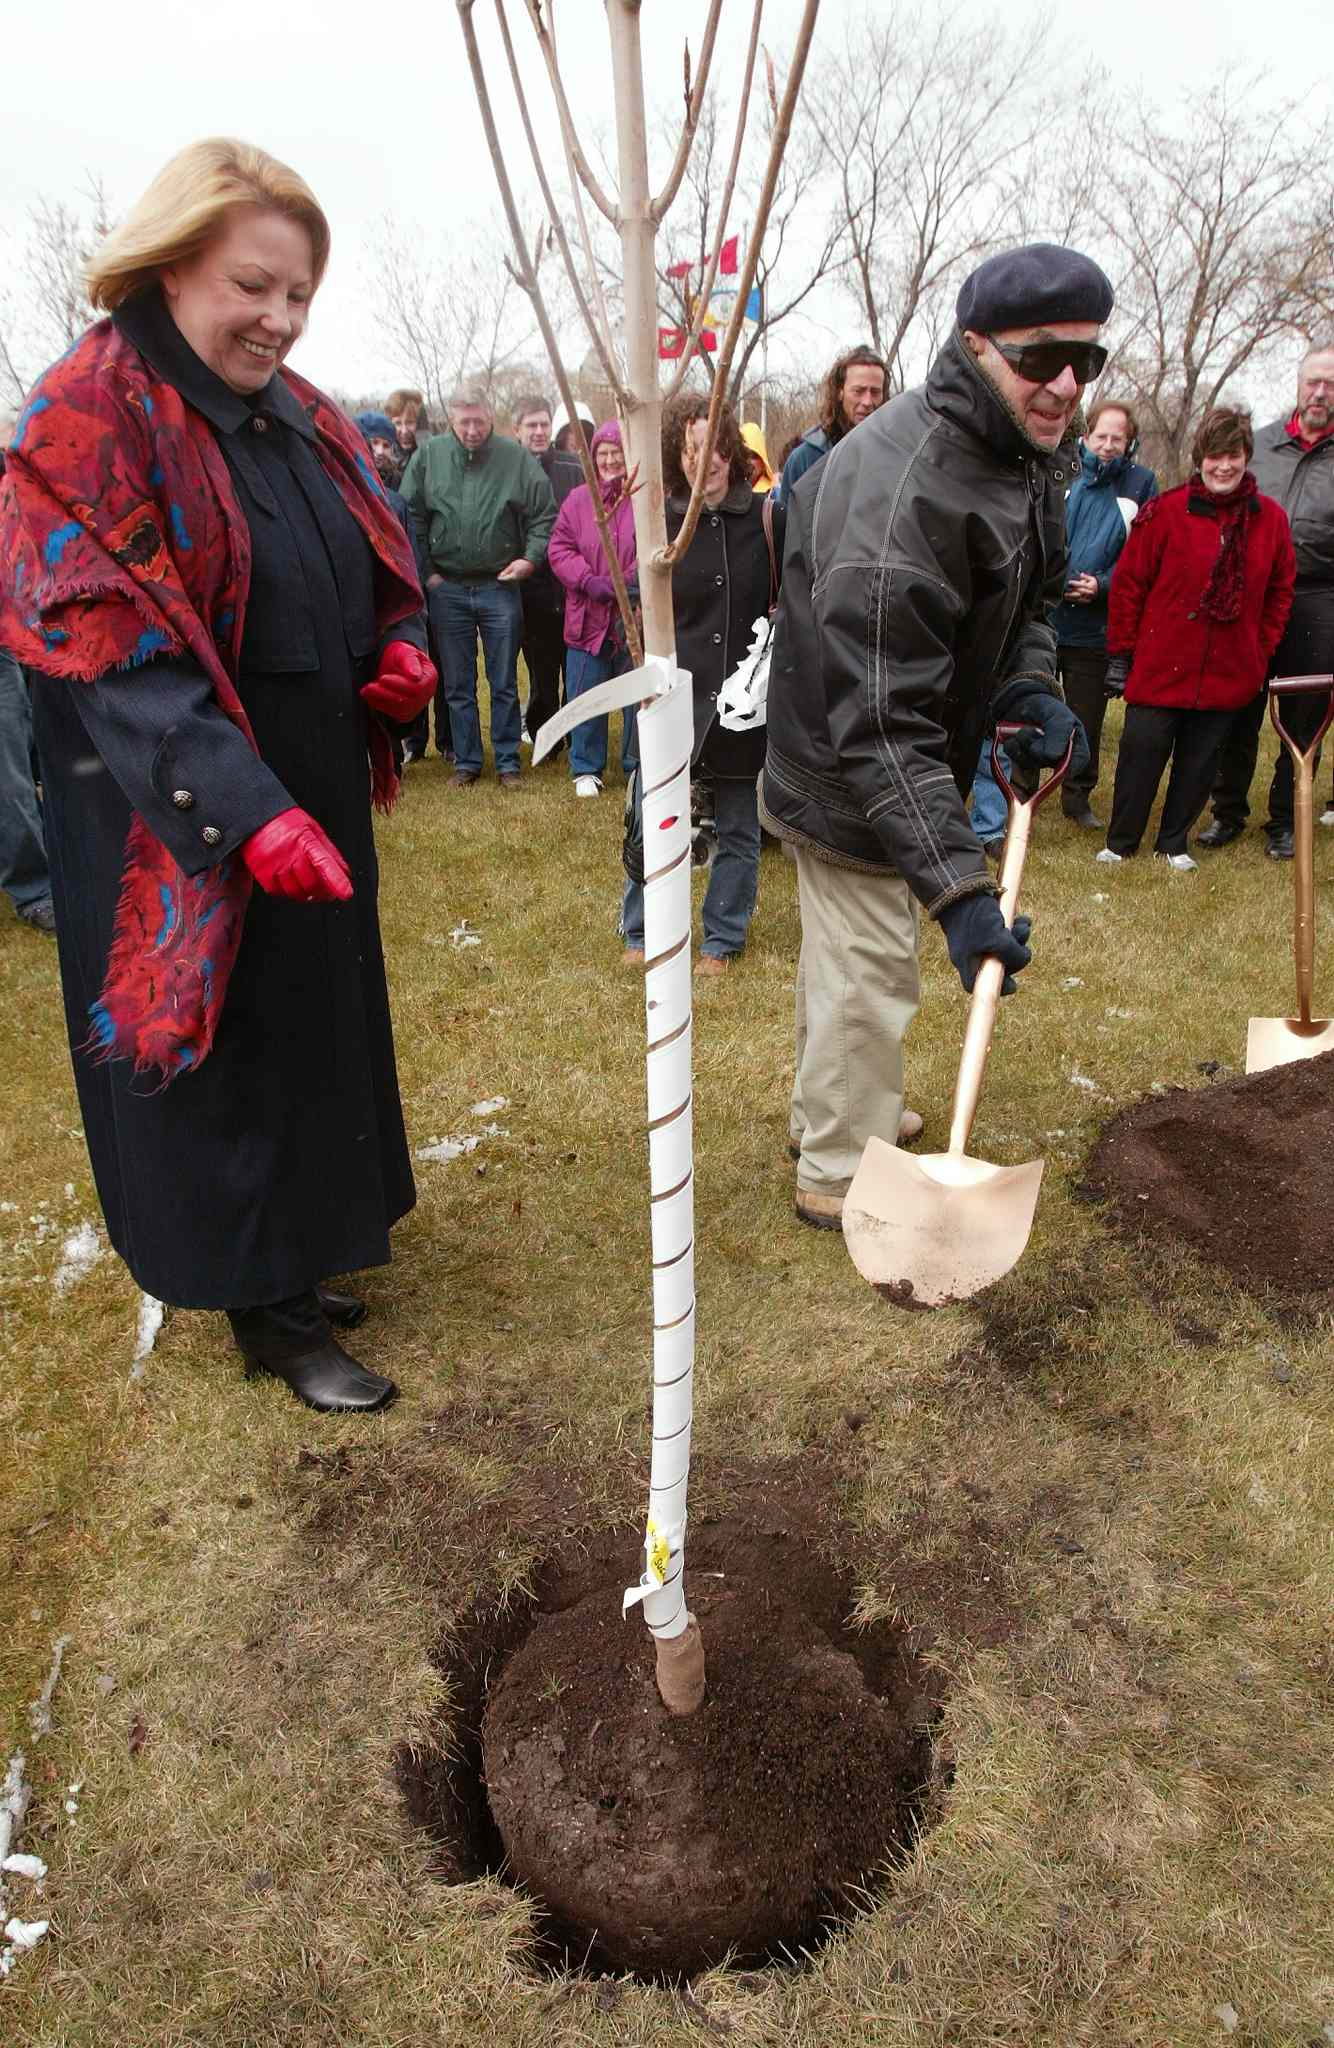 Winnipeg Free Press columist Val Werier helps plant a tree at Assiniboine Park with Dorothy Dobbie of the Coalition to Save the Elms on May 1, 2005 during the third annual Arbor Day in the Park. Werier was honoured for his work over the years in protecting trees and the enviroment.